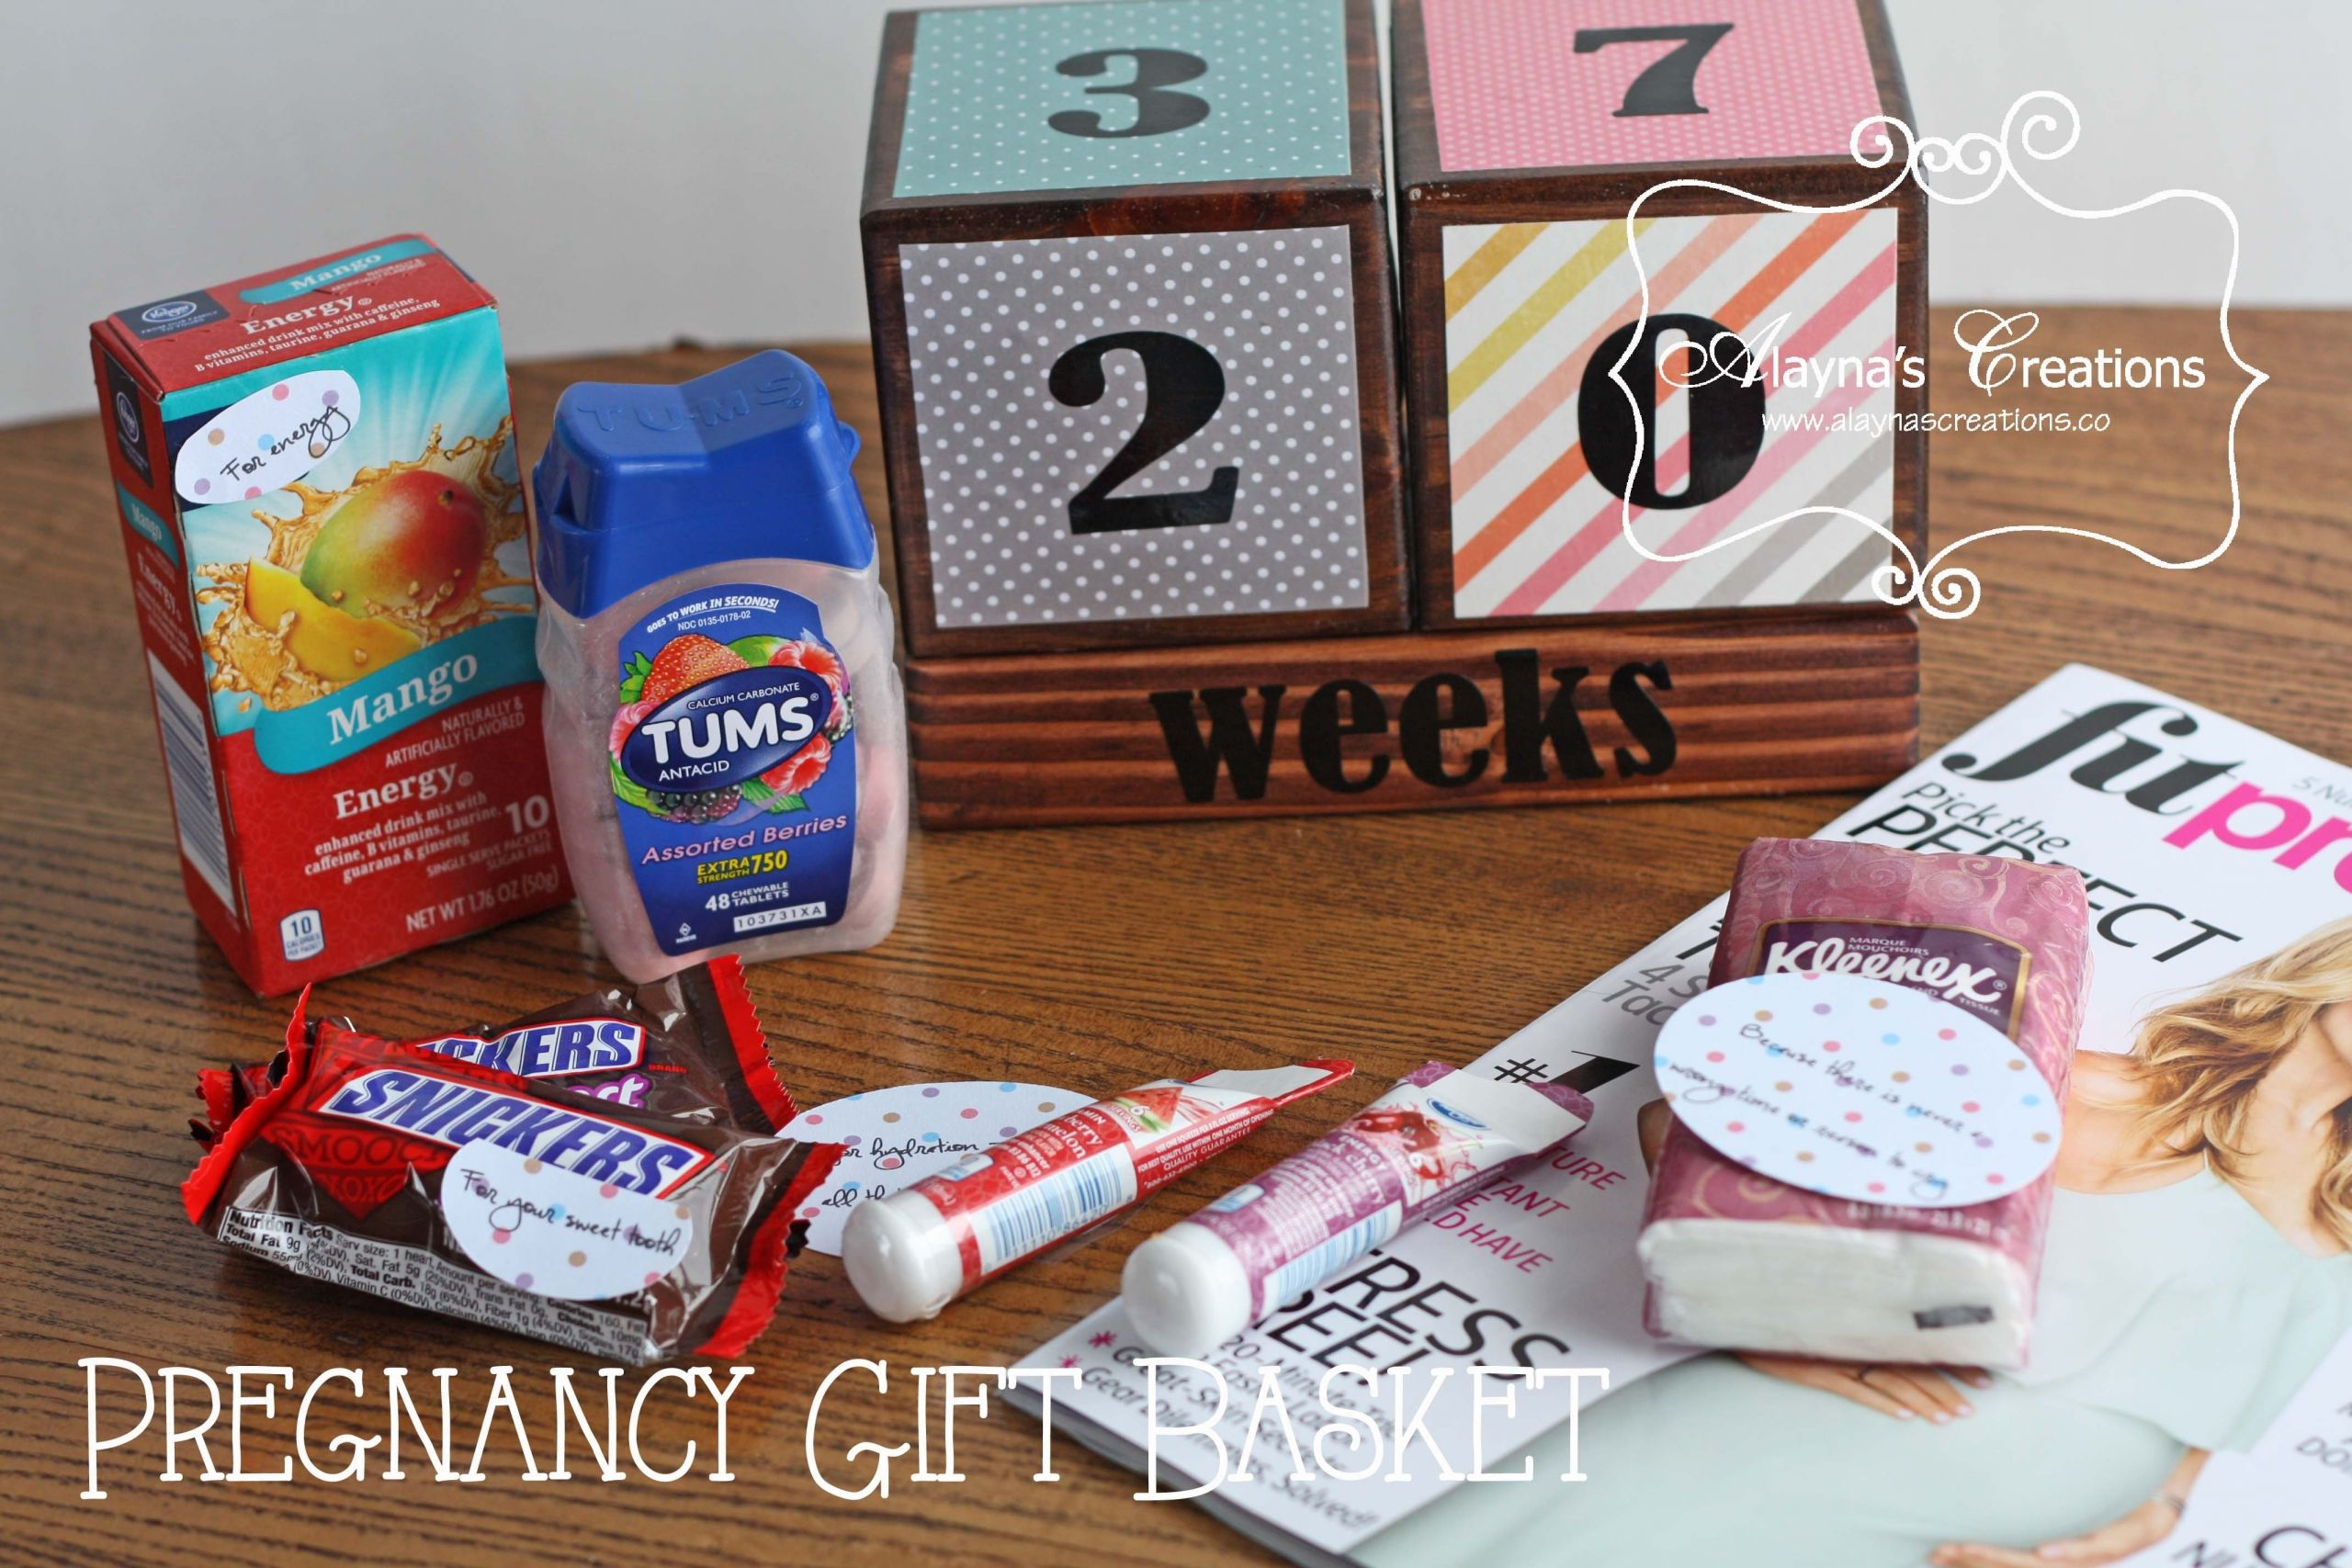 Gift Ideas For Expecting Mother  10 Most Popular Gift Ideas For Expecting Mothers 2019